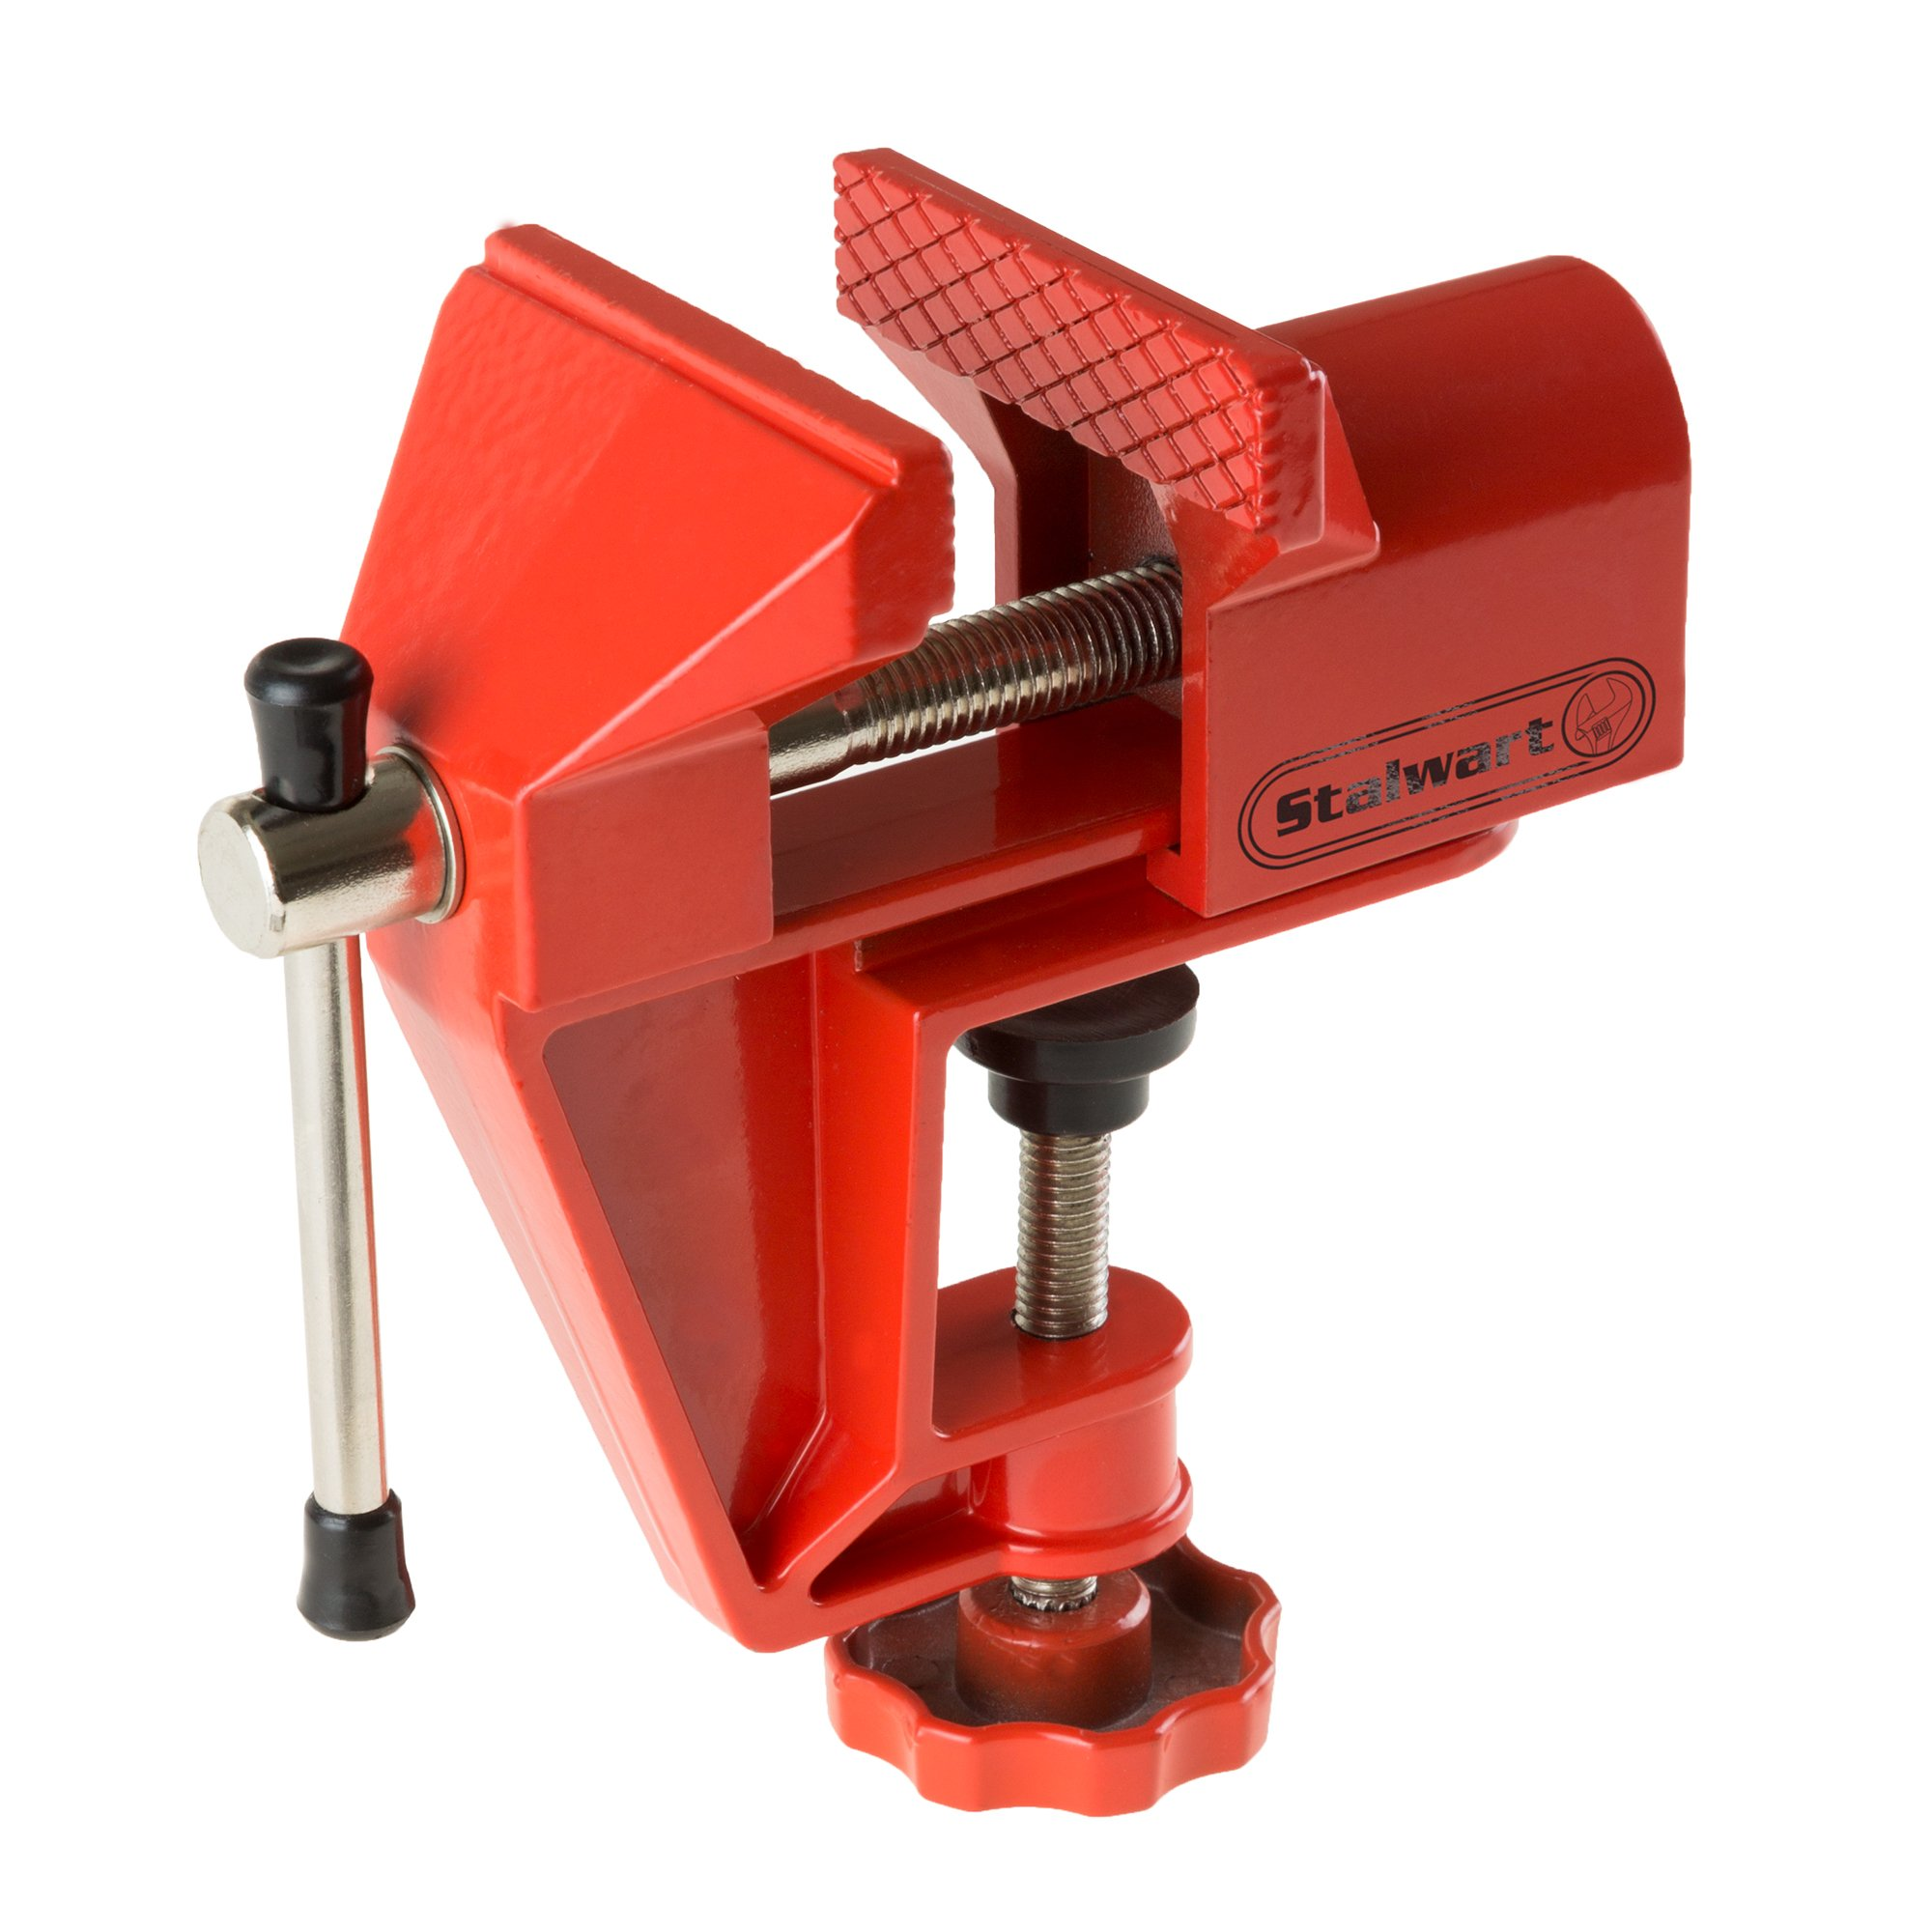 2 Inch Jaw Aluminum Table Vise For Jewelery, Hobby, Electronics By Stalwart